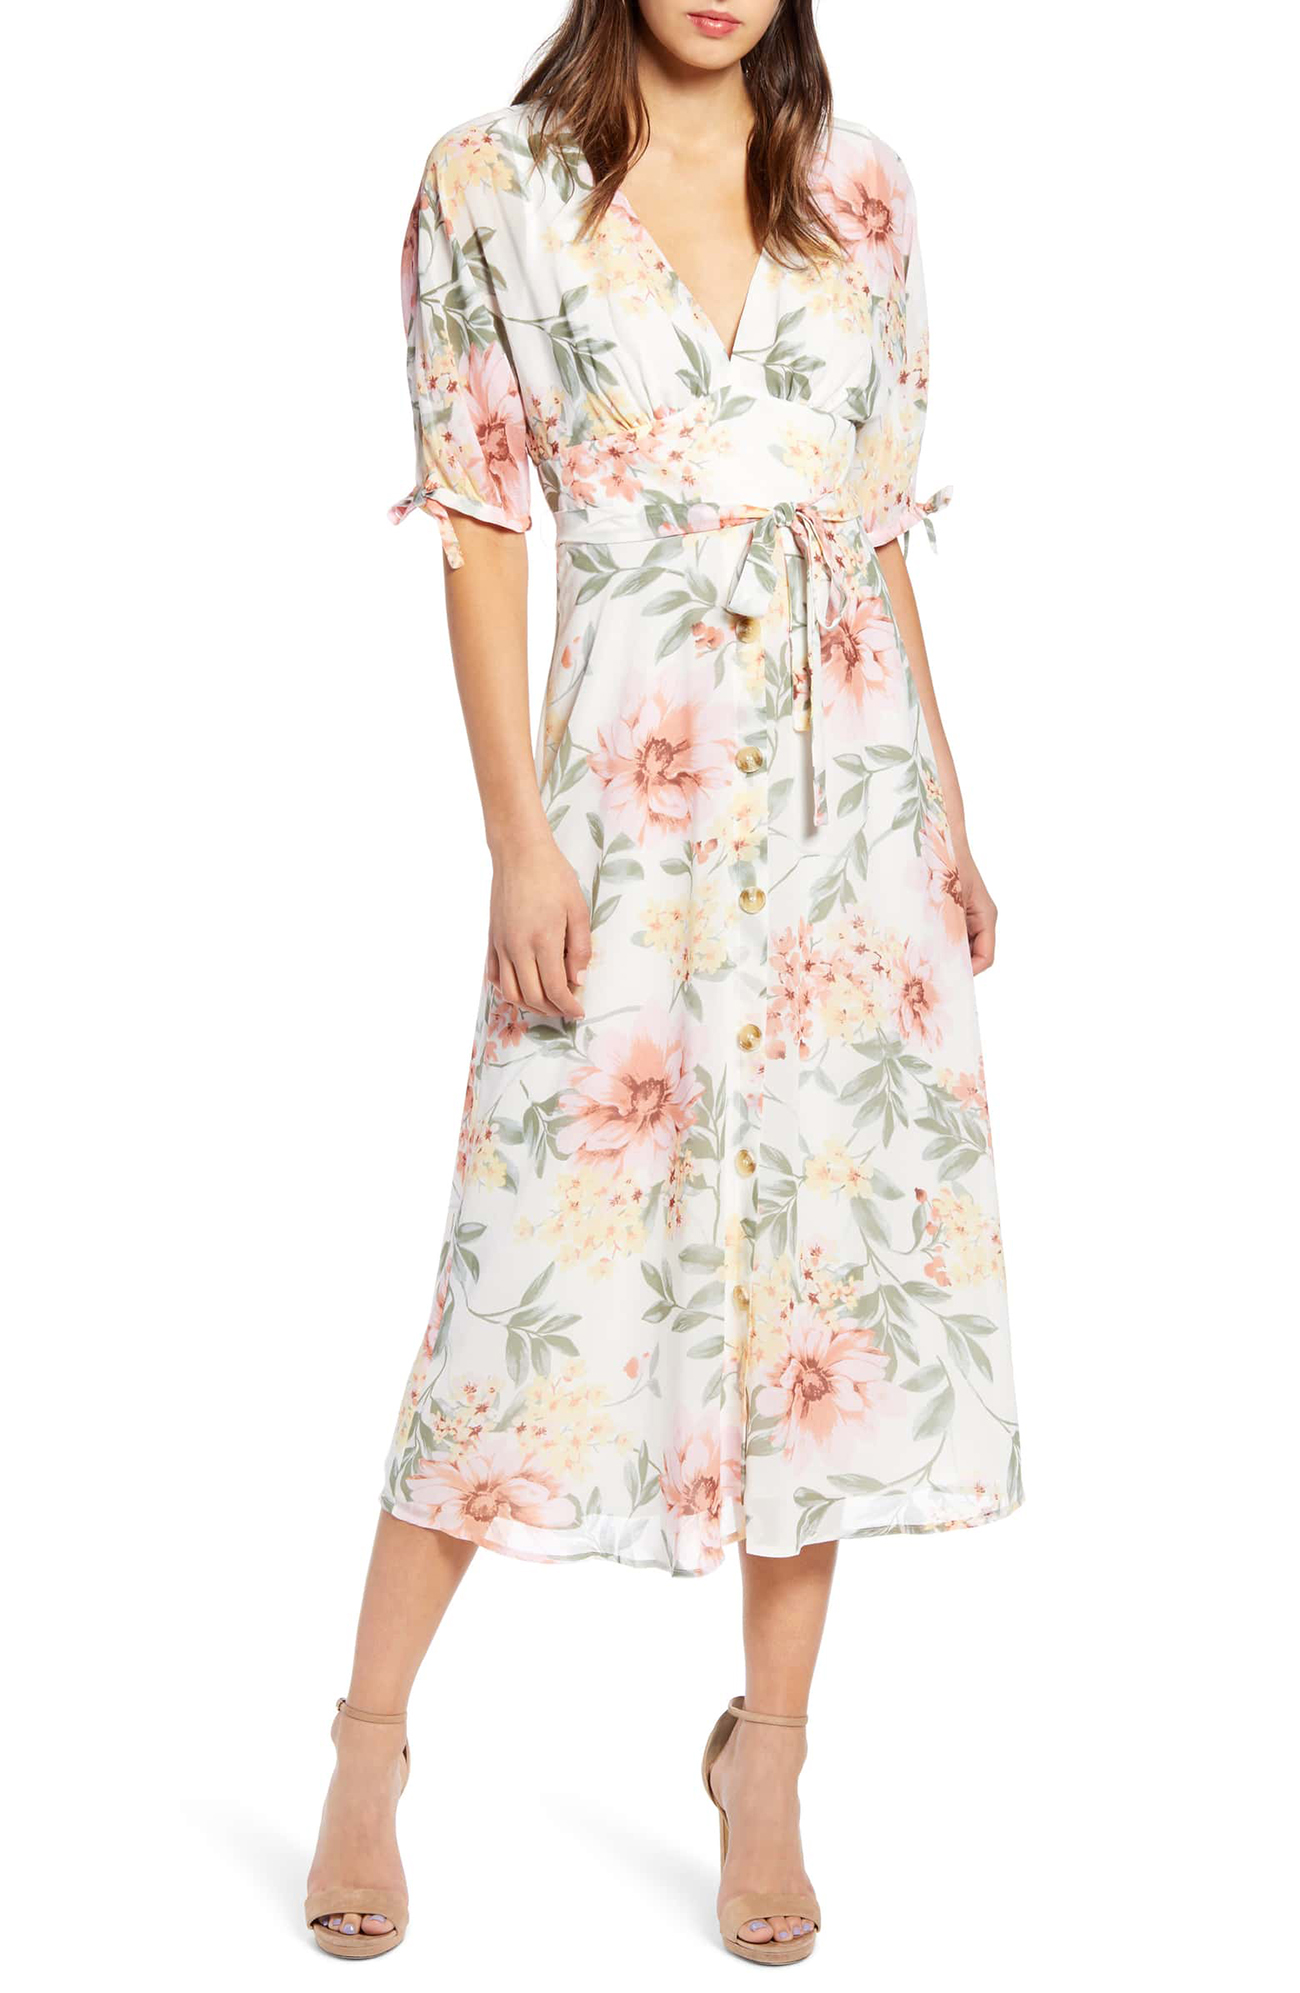 Floral Dress What to Wear to Spring Wedding